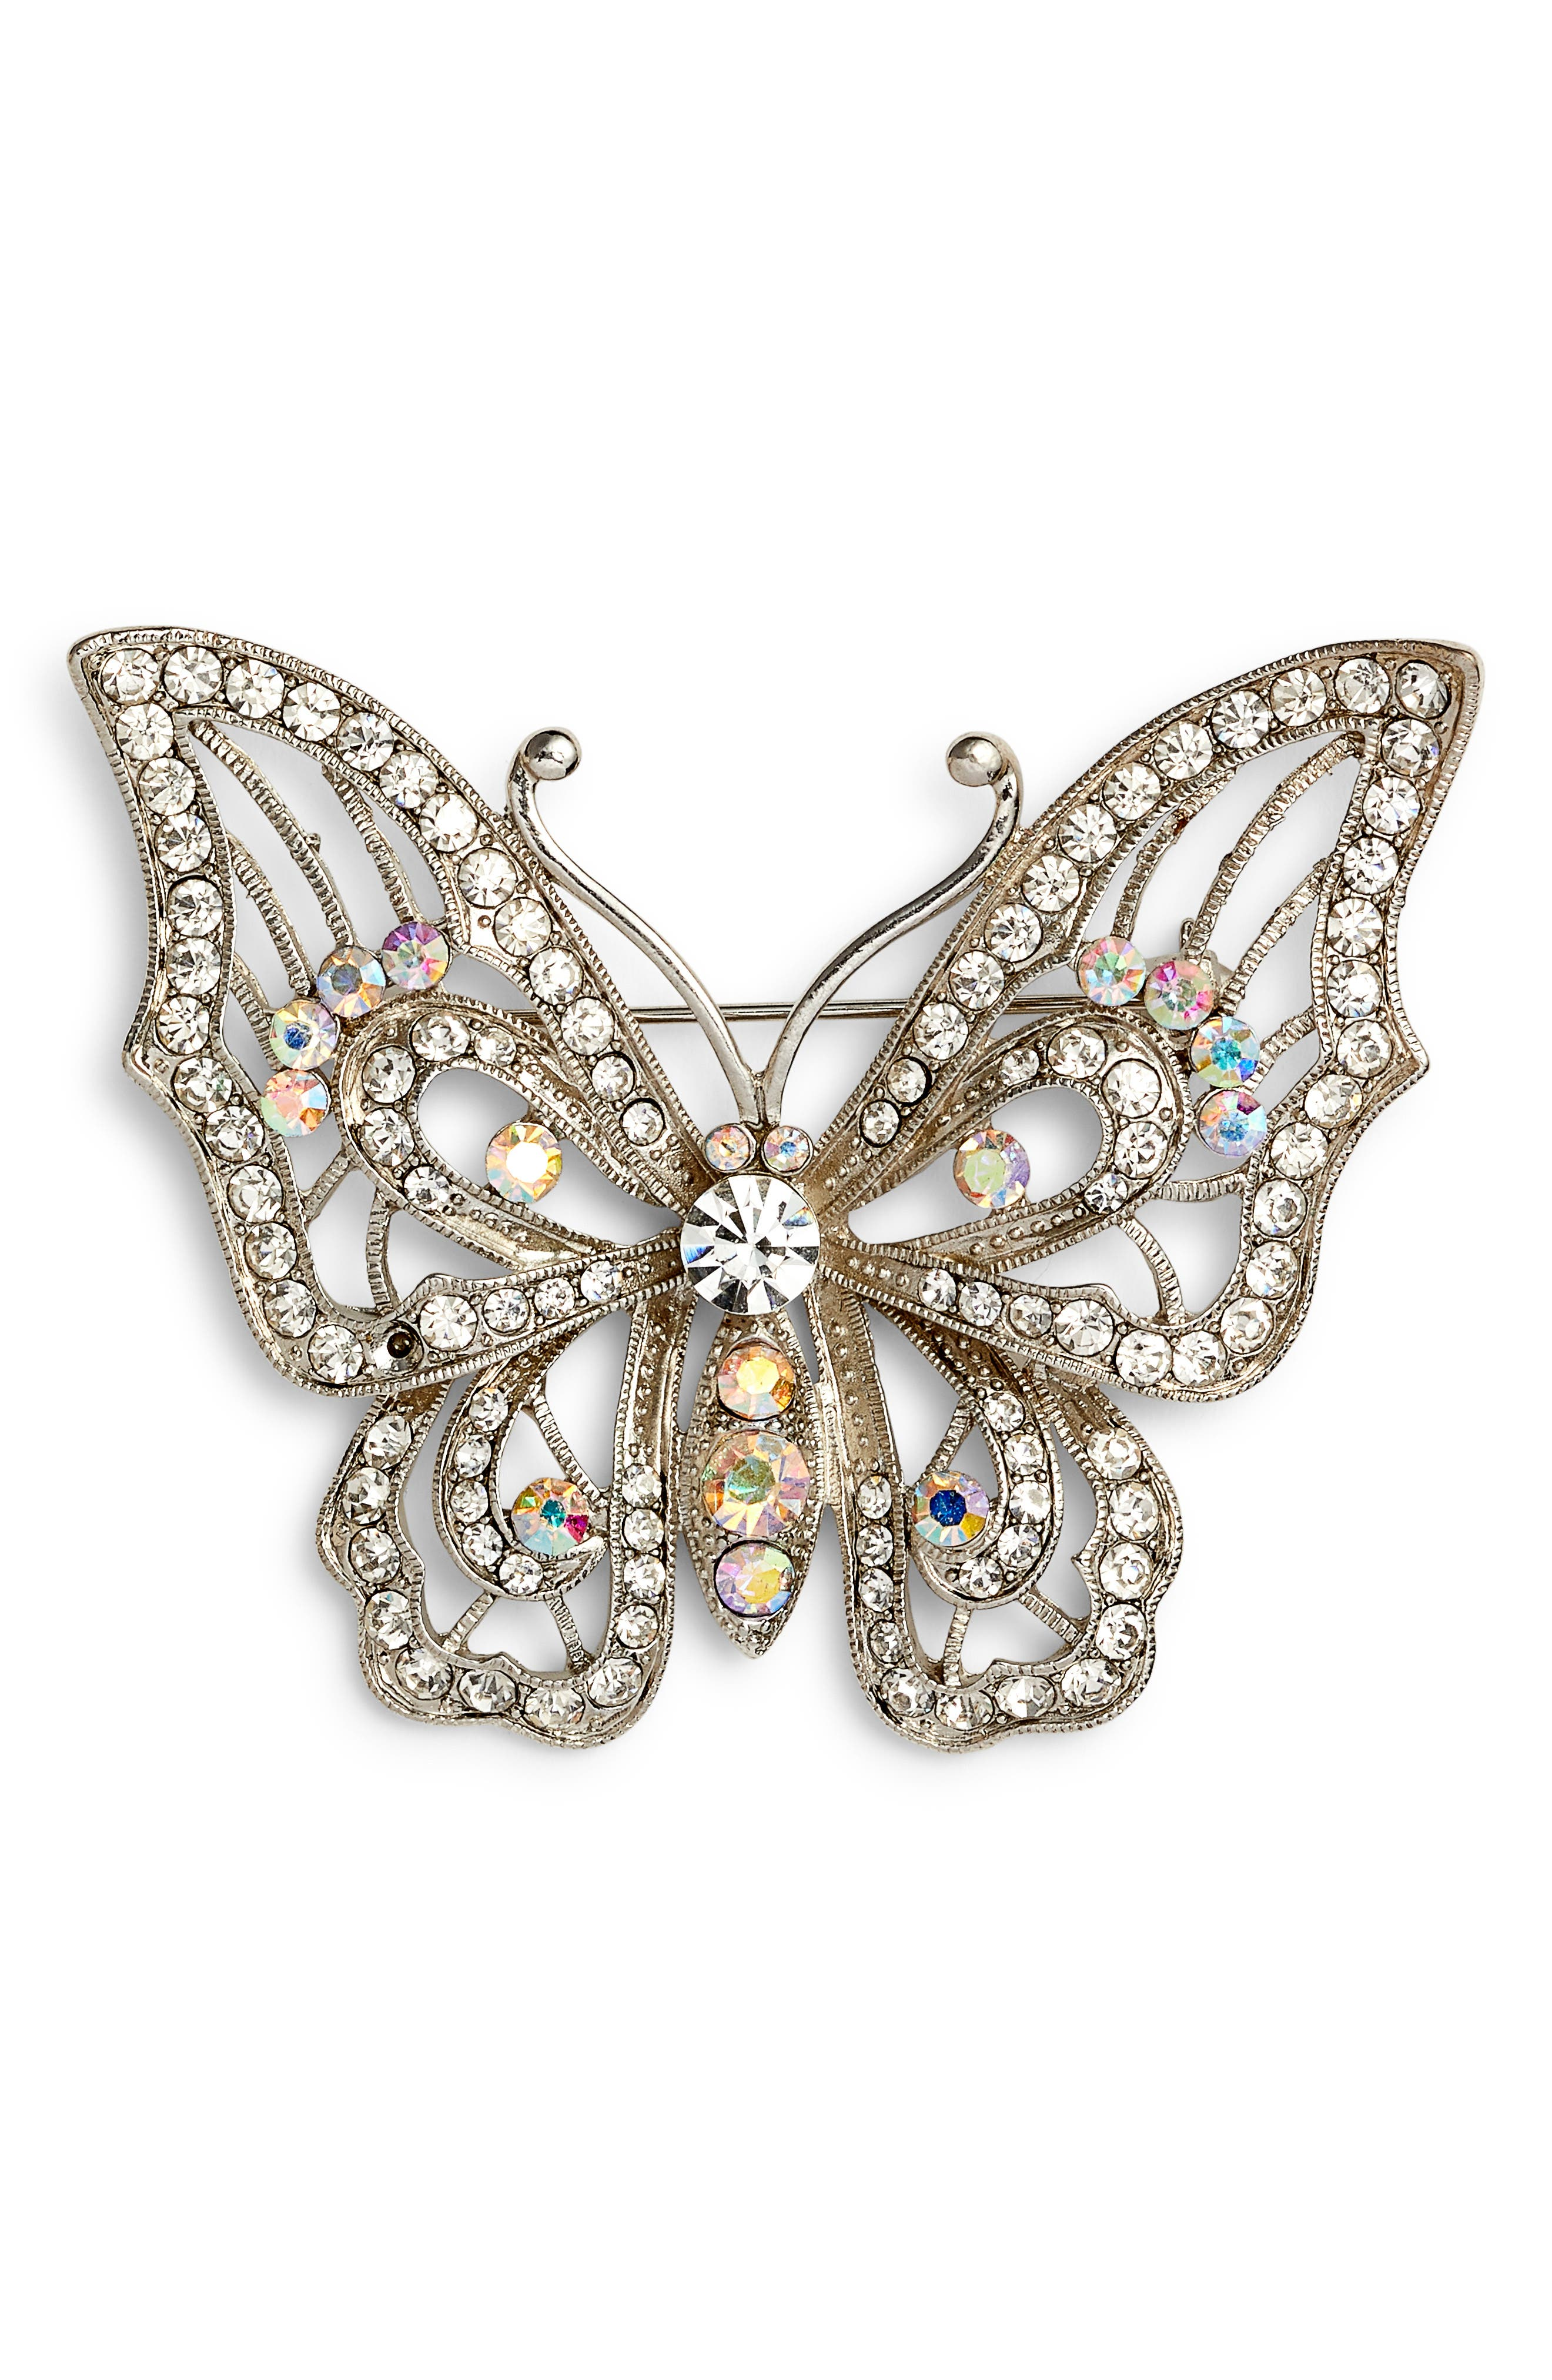 Openwork Pavé Butterfly Brooch,                             Main thumbnail 1, color,                             Crystal/ Silver